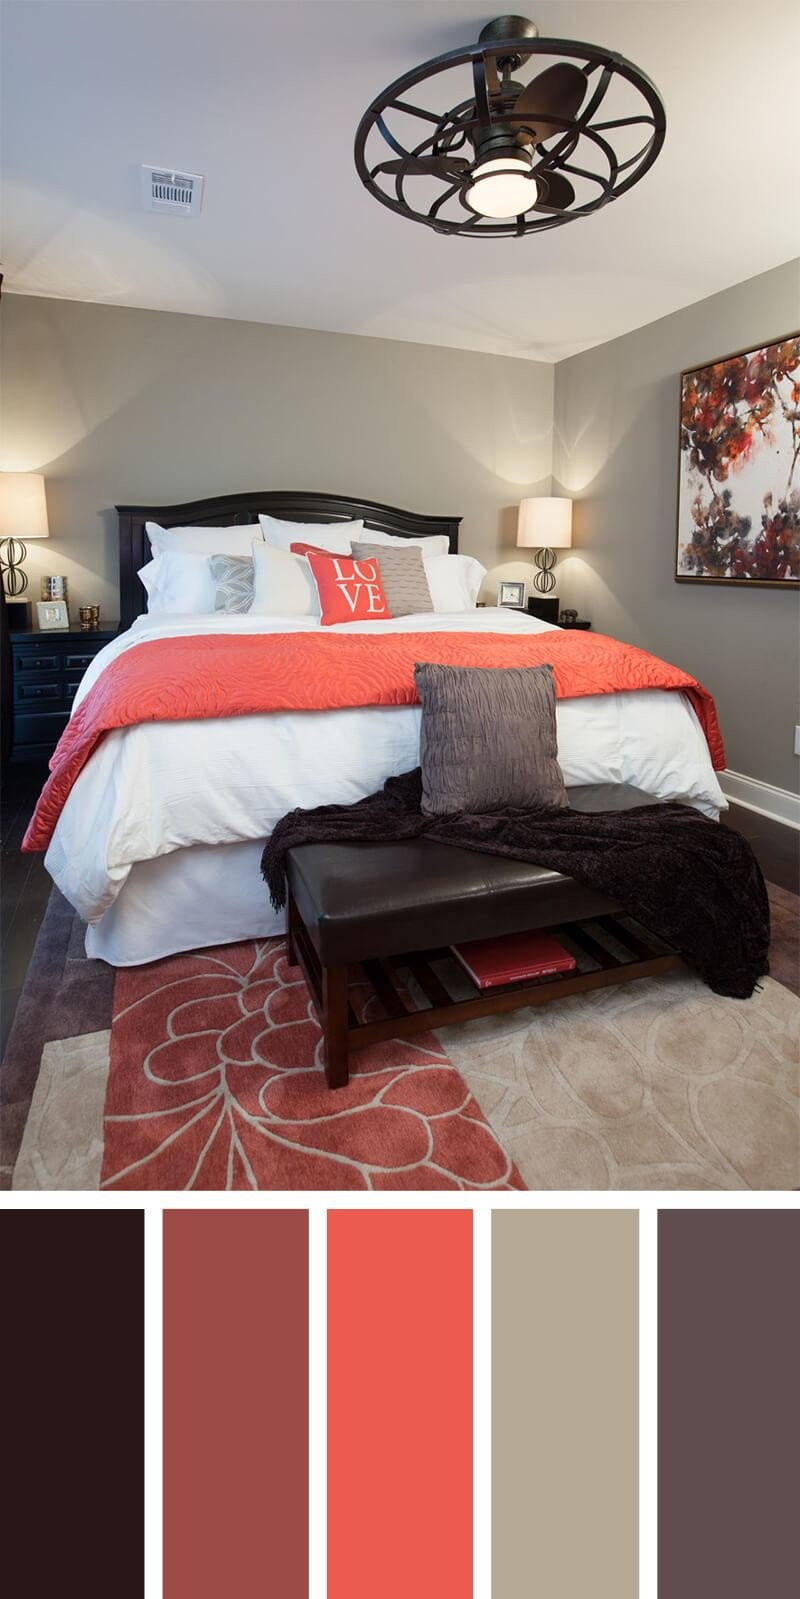 Best 12 Best Bedroom Color Scheme Ideas And Designs For 2019 With Pictures